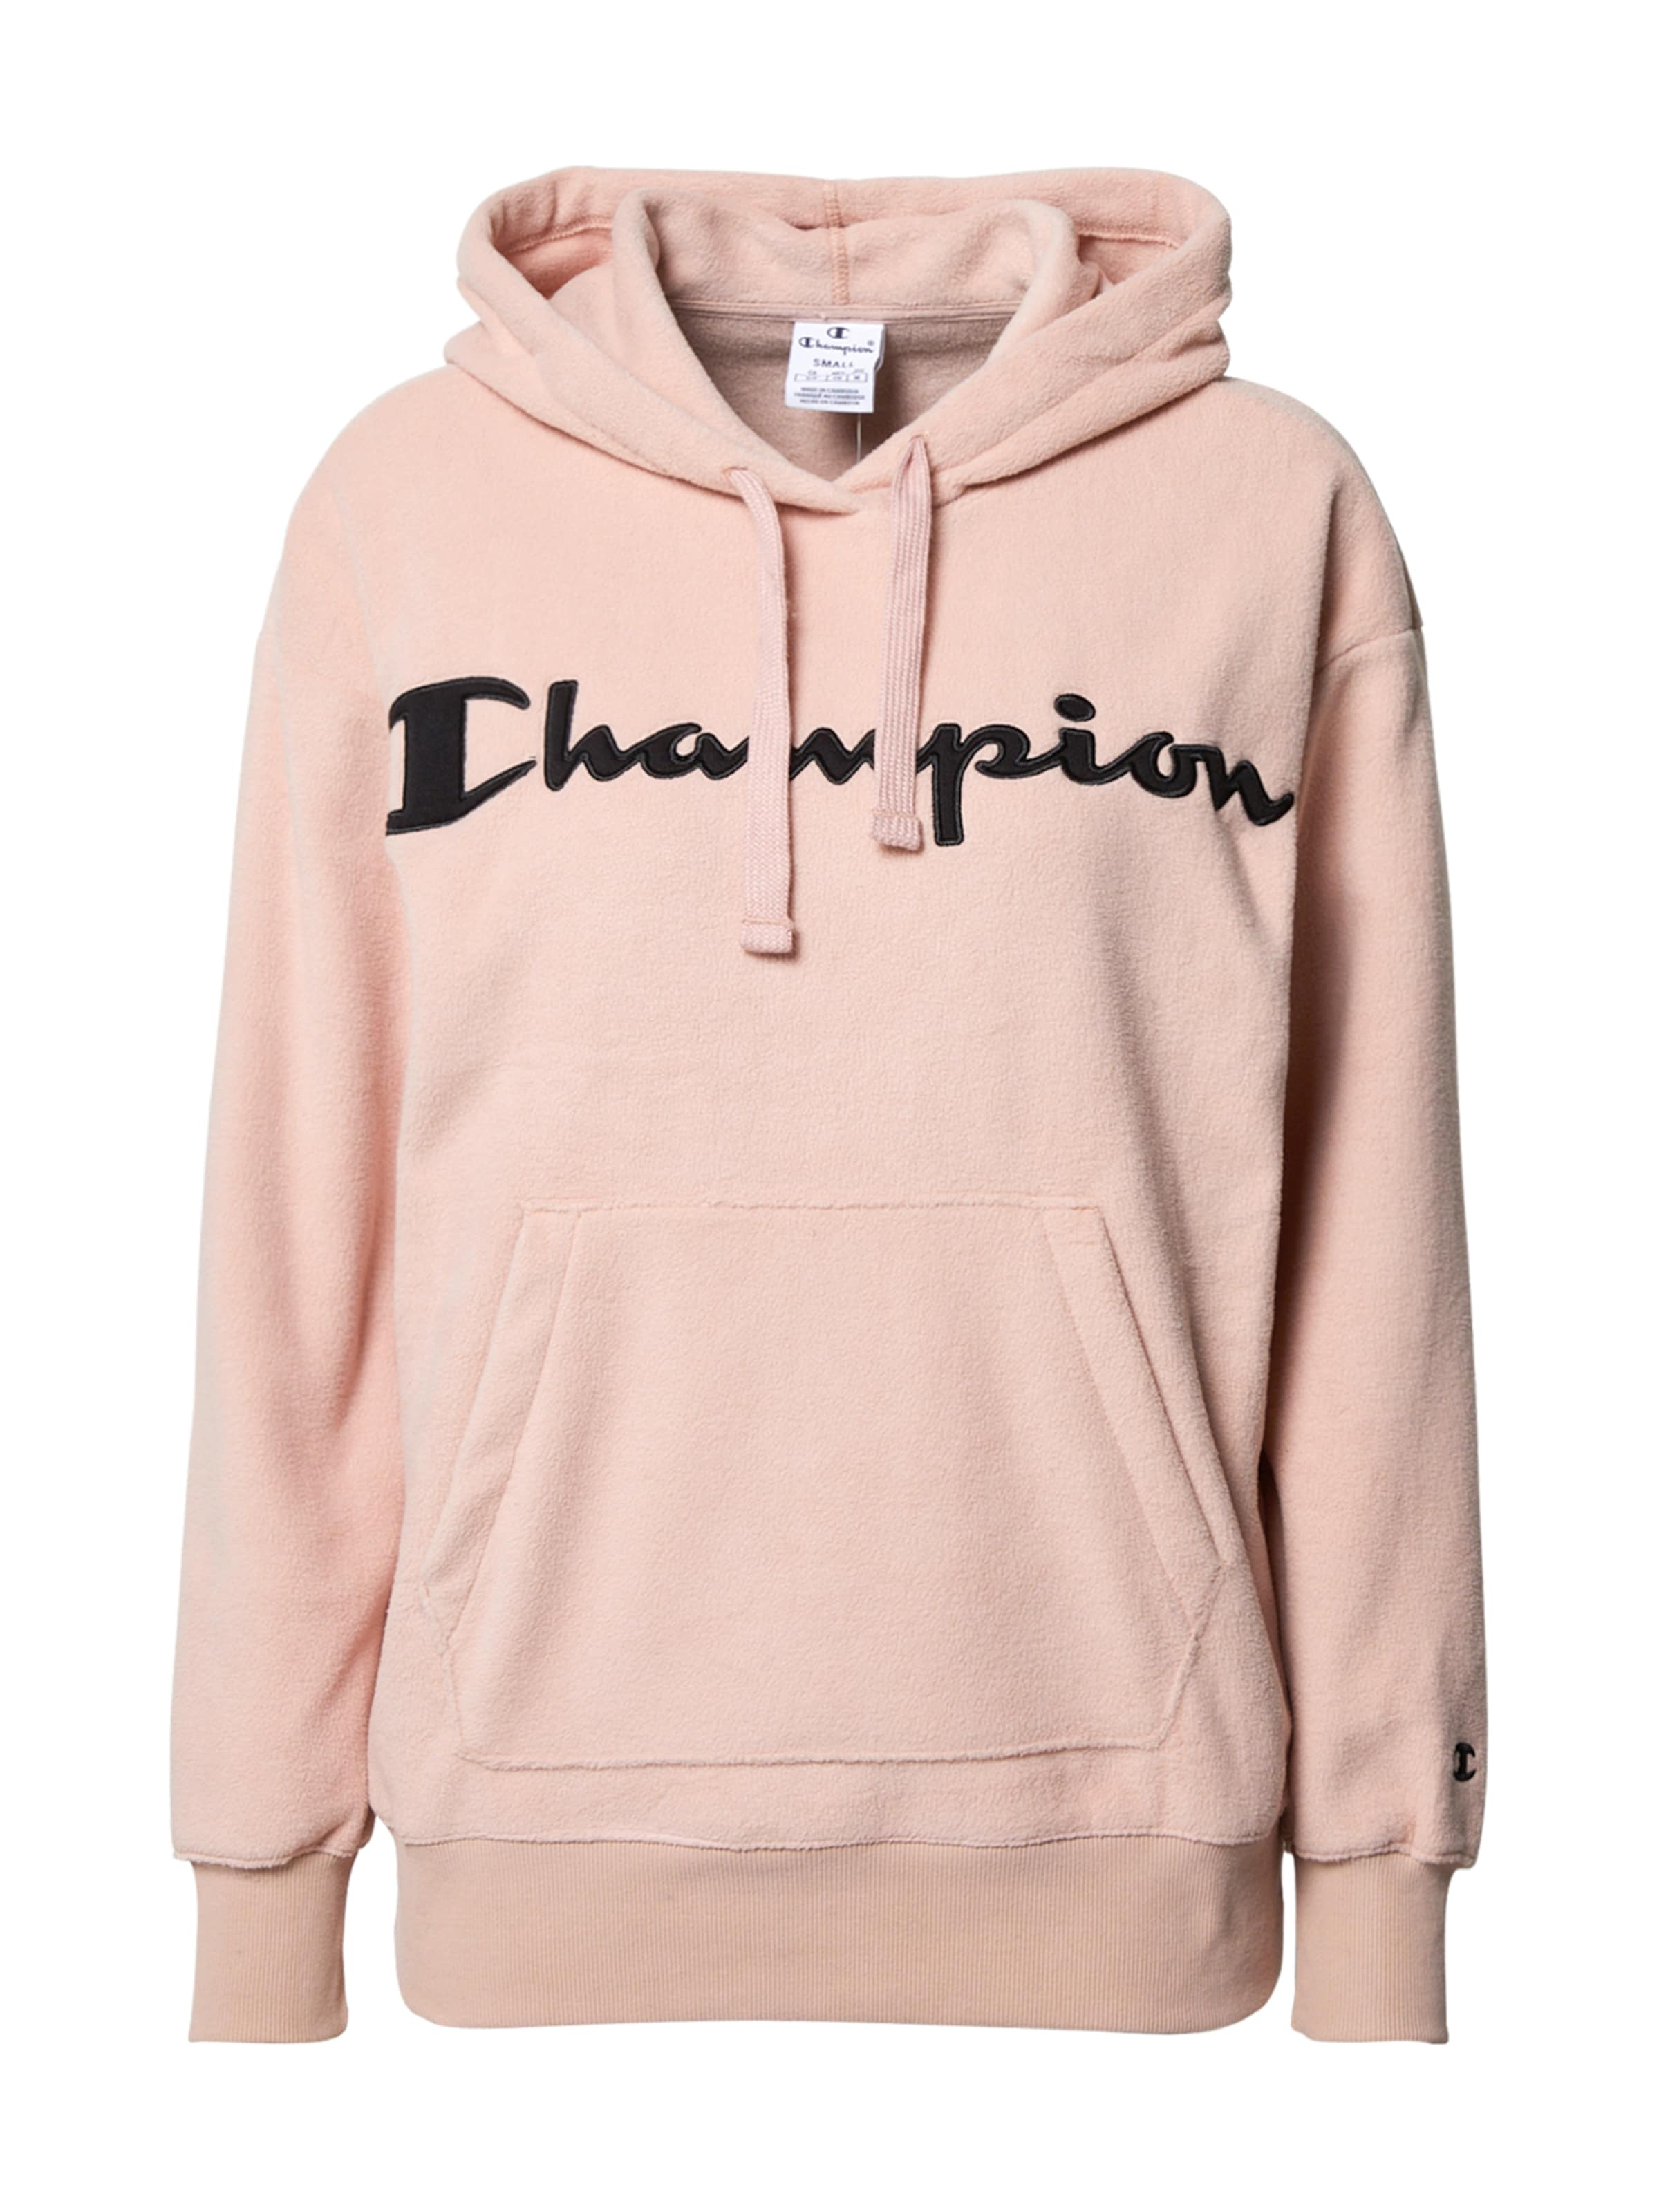 Champion Authentic Athletic Apparel Sweatshirt i puder / svart